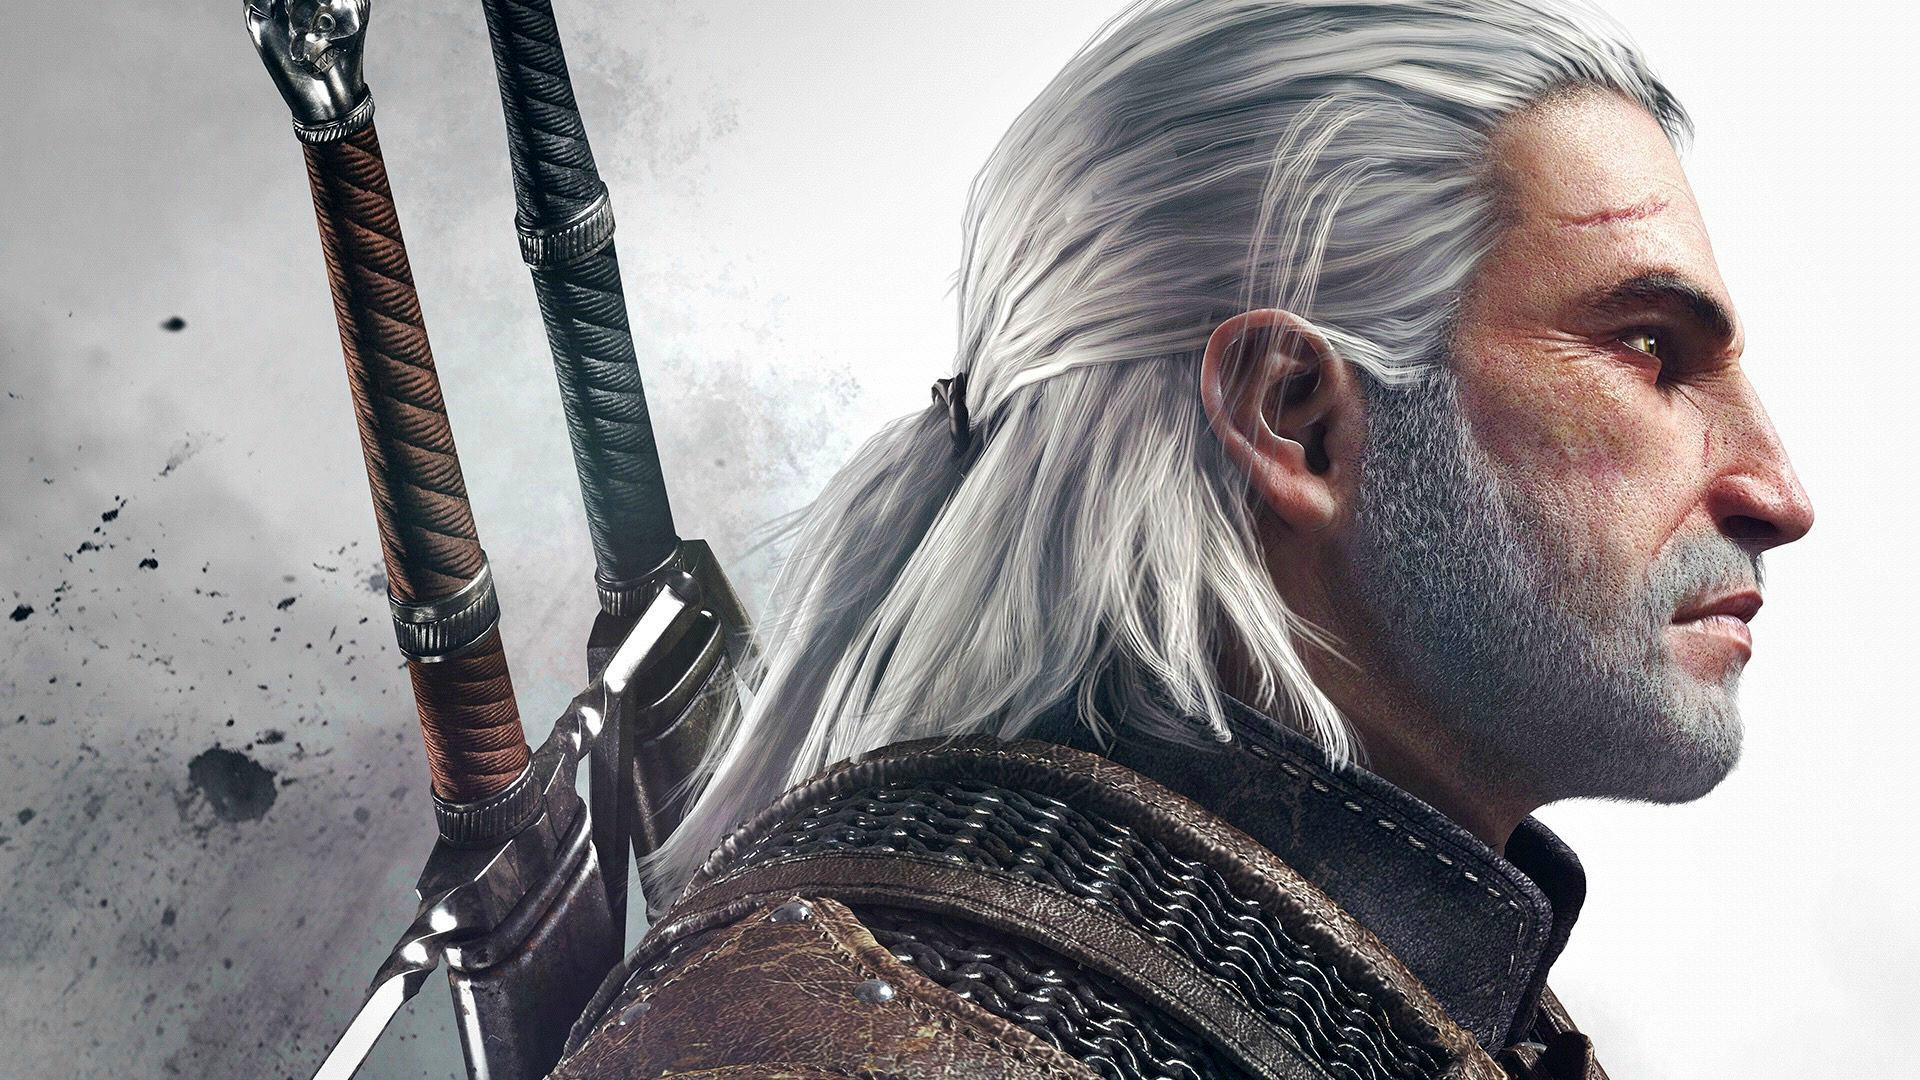 The Witcher TV Series Writer Says Show Won't be